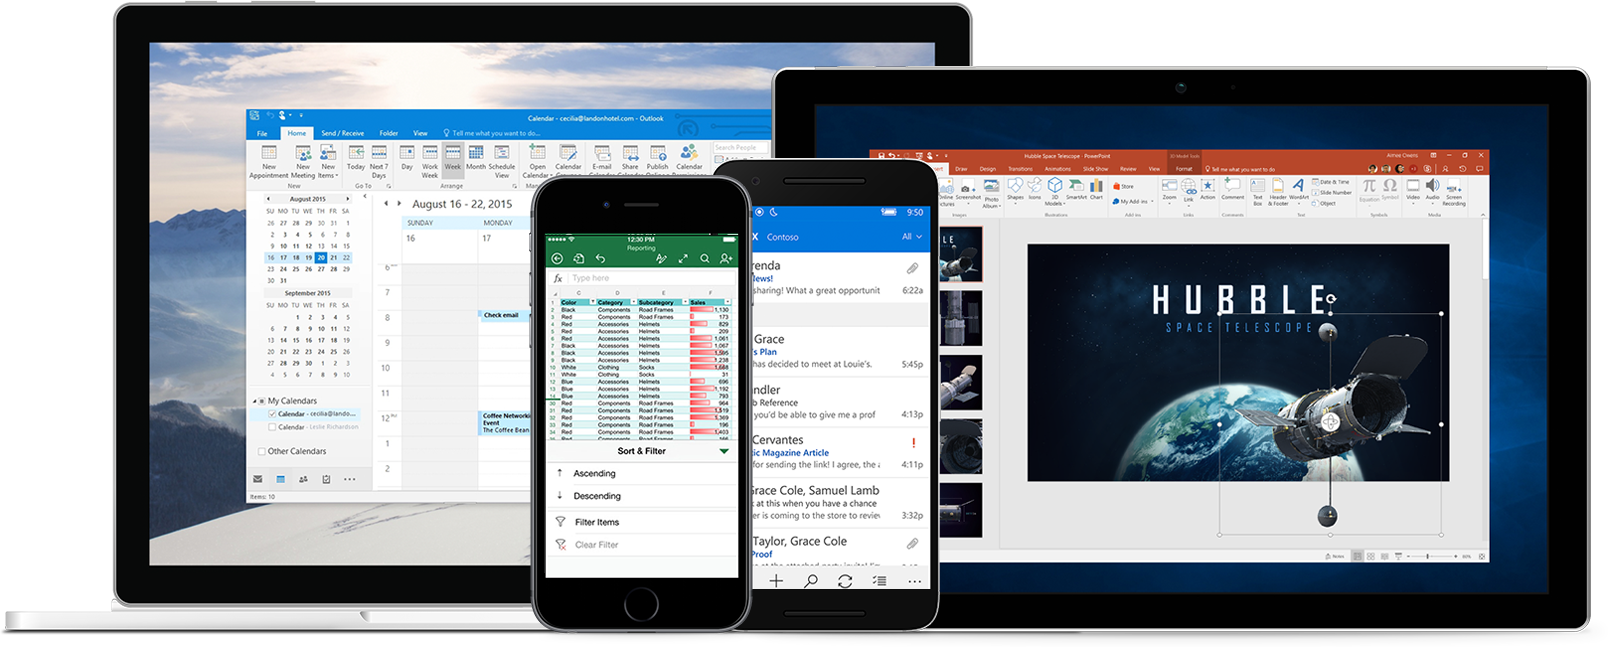 Try Microsoft Office 365 | Free subscription trial for 1 month